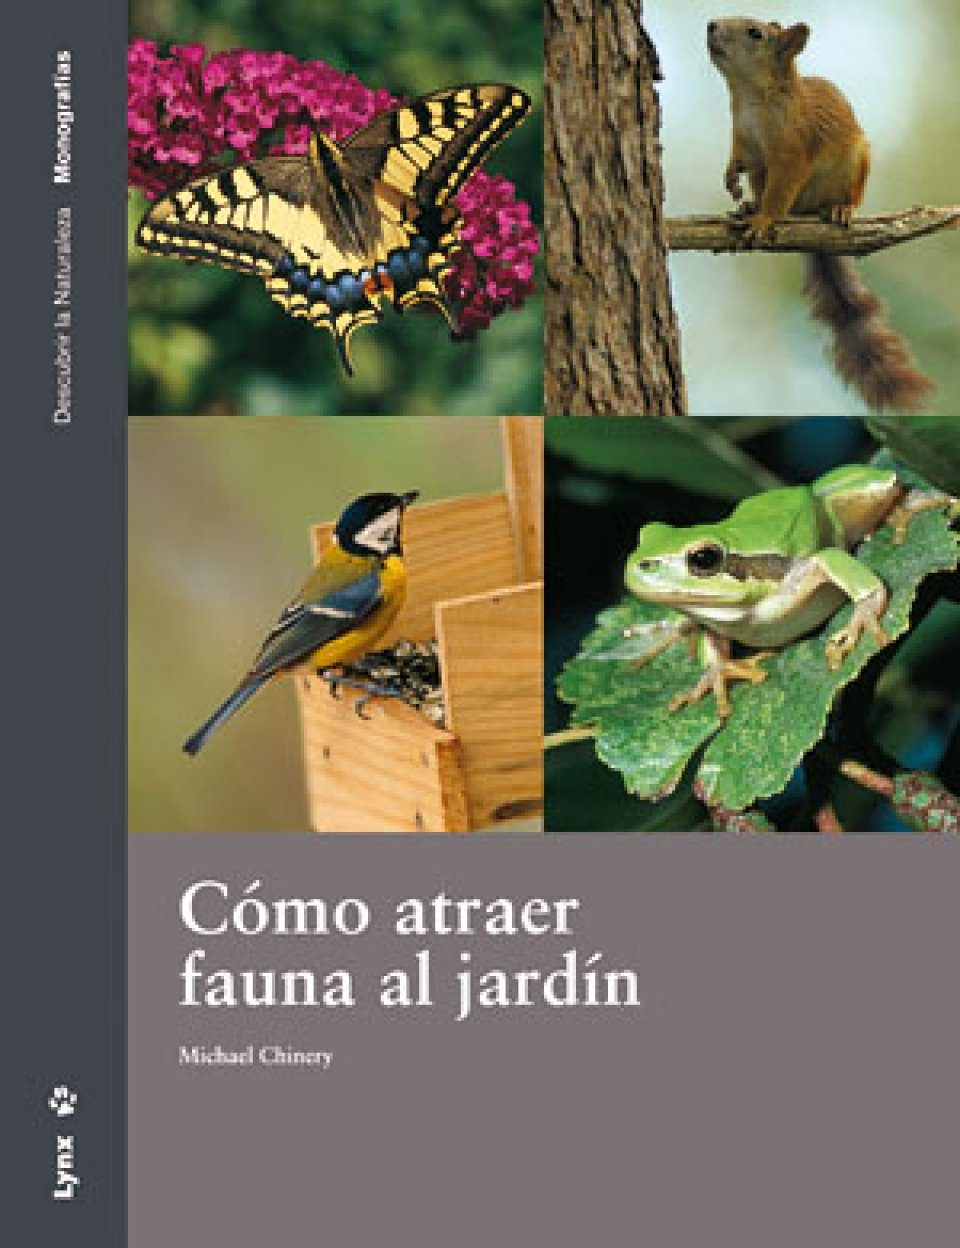 Como Atraer Fauna al Jardin [Attracting Wildlife to Your Garden]